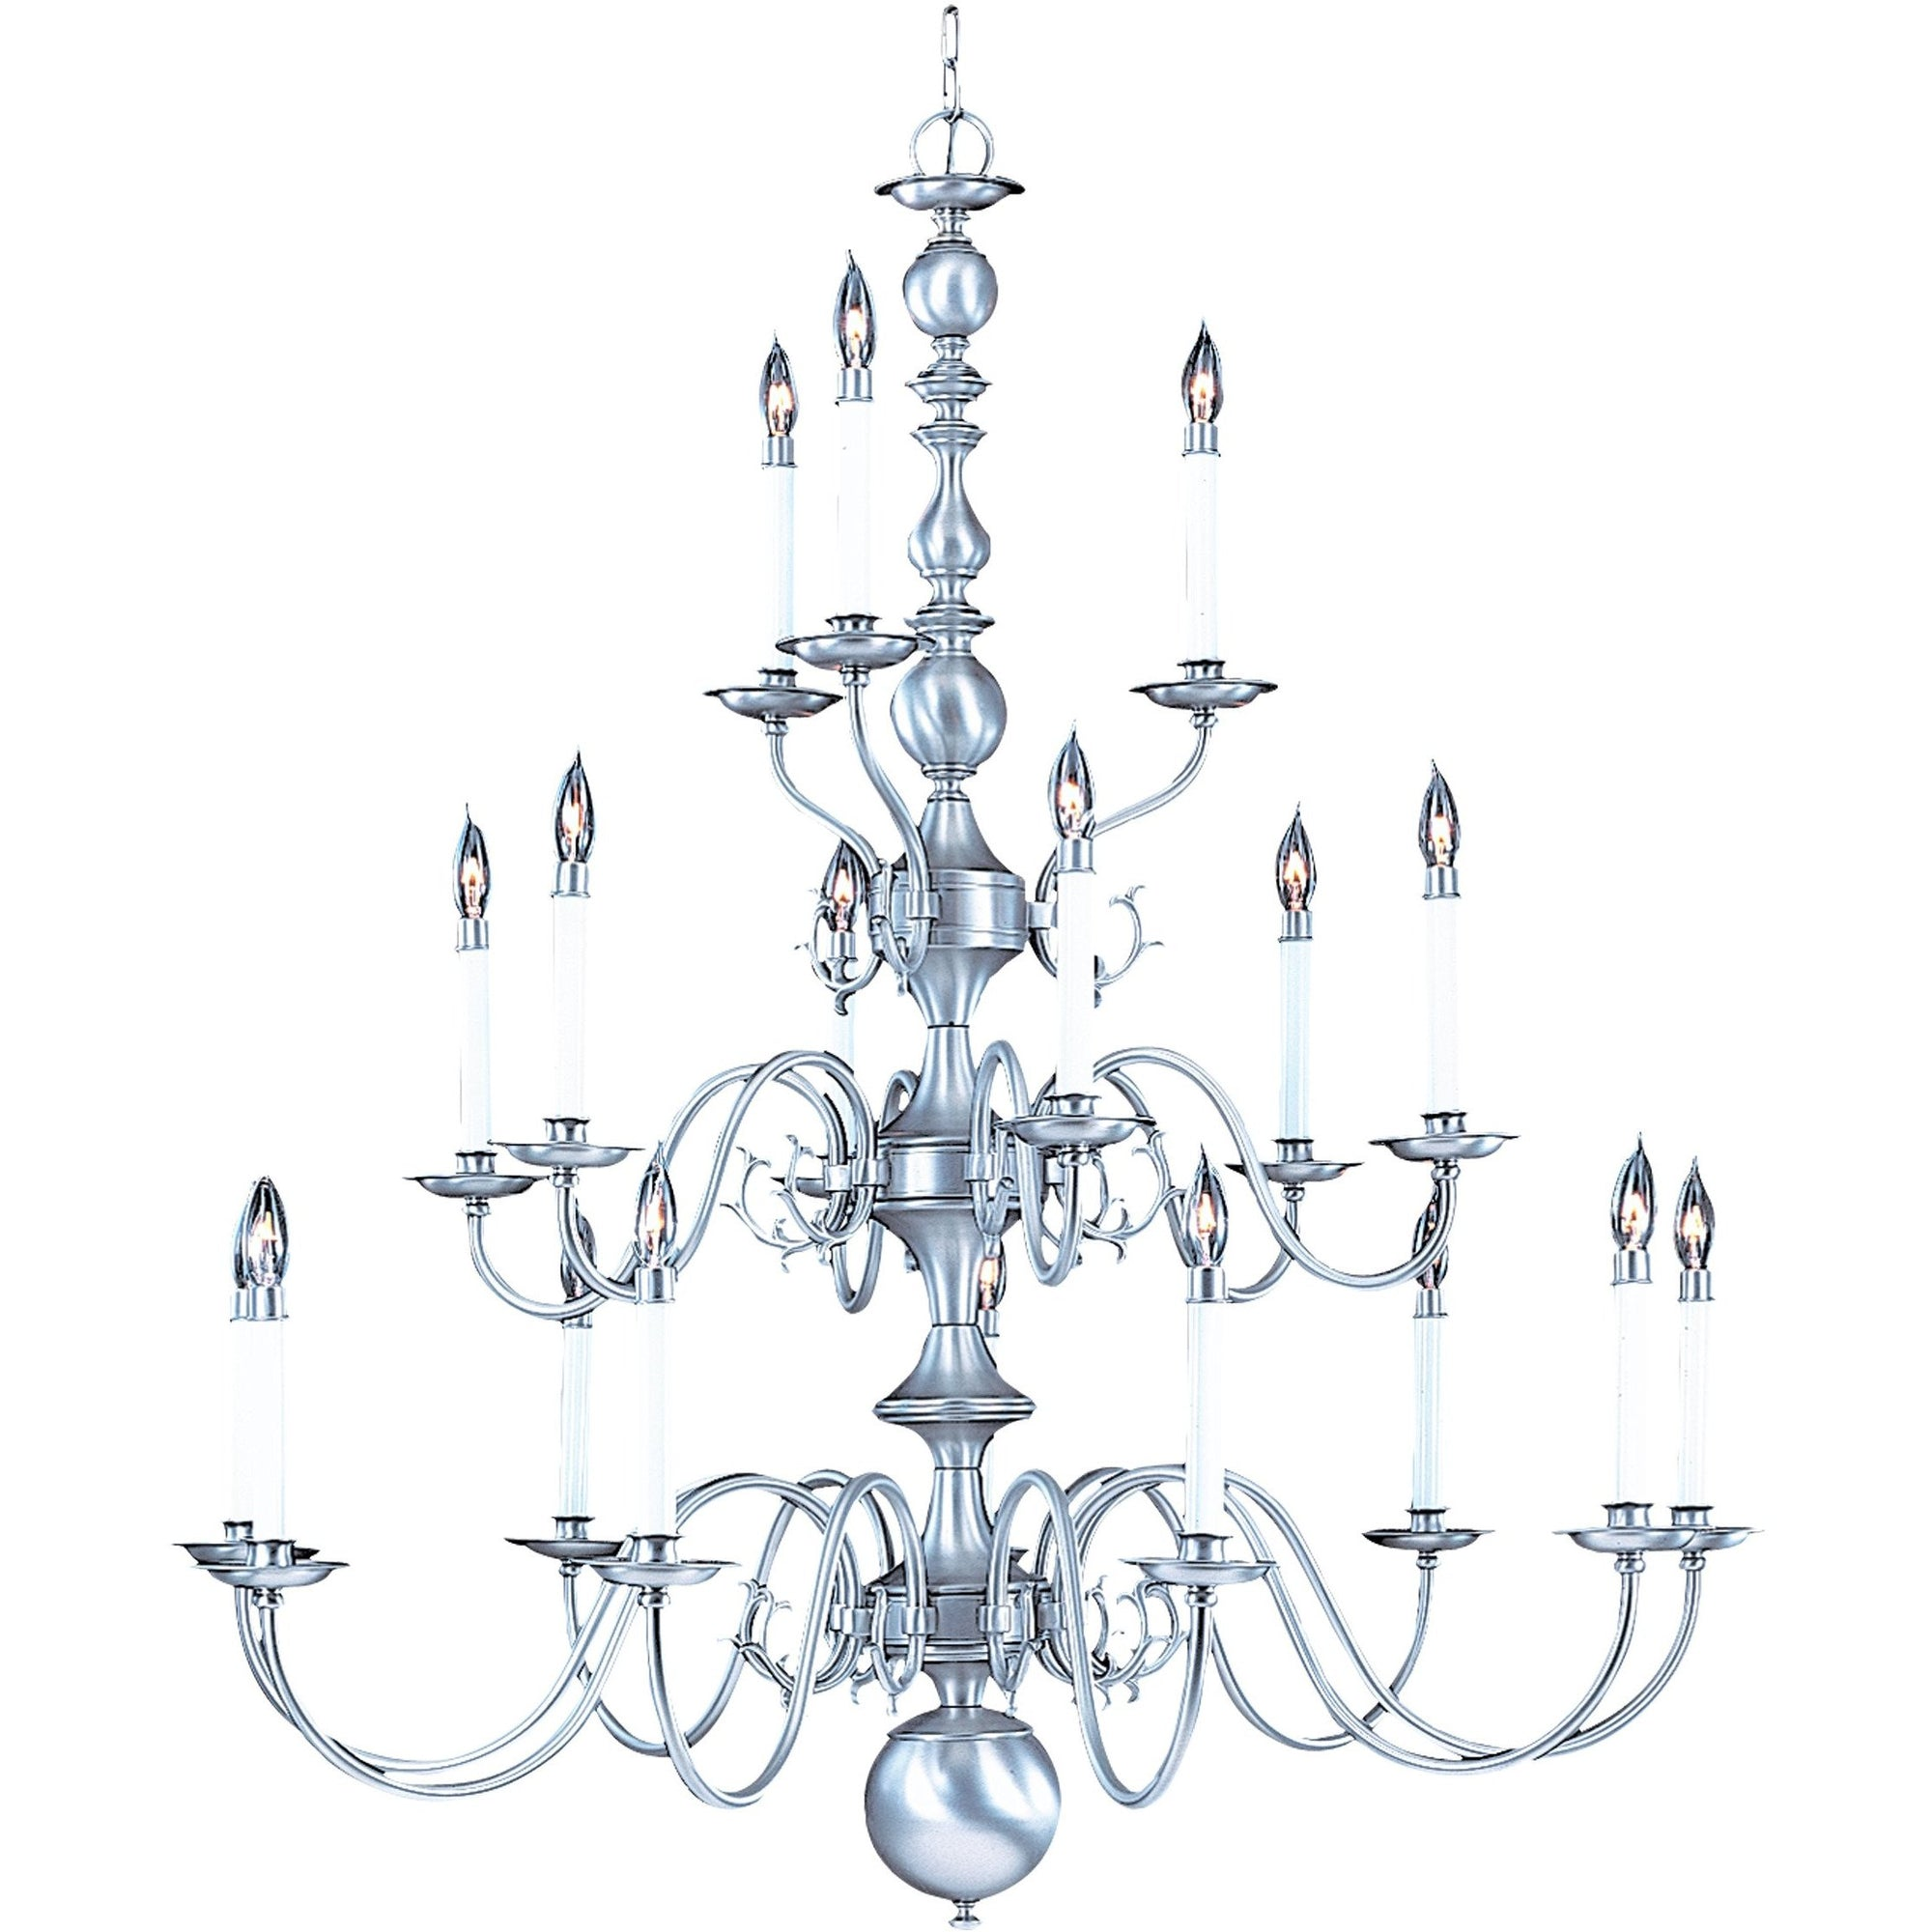 Framburg Foyer Chandeliers Satin Pewter 18-Light Satin Pewter Jamestown Foyer Chandelier by Framburg 9148